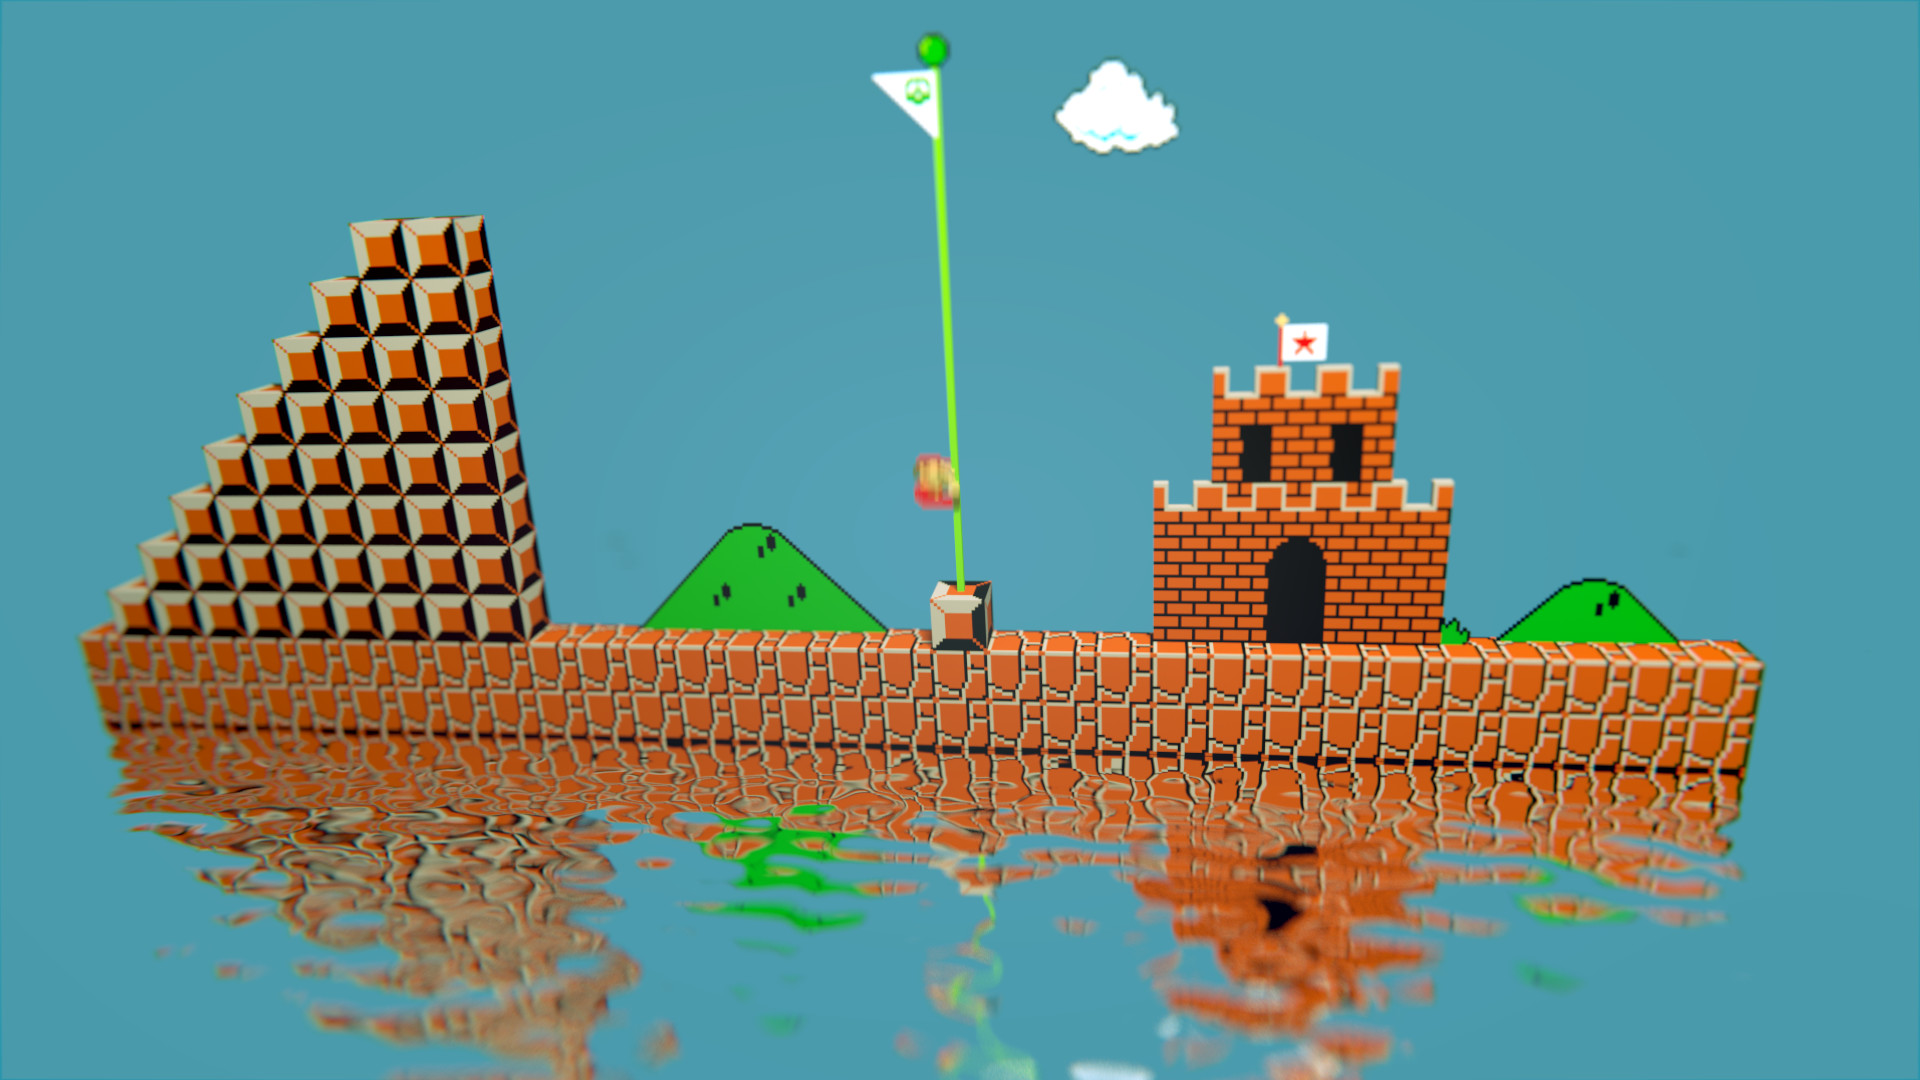 1920x1080 Mario wallpaper by MrHeinzelnisse Mario wallpaper by MrHeinzelnisse